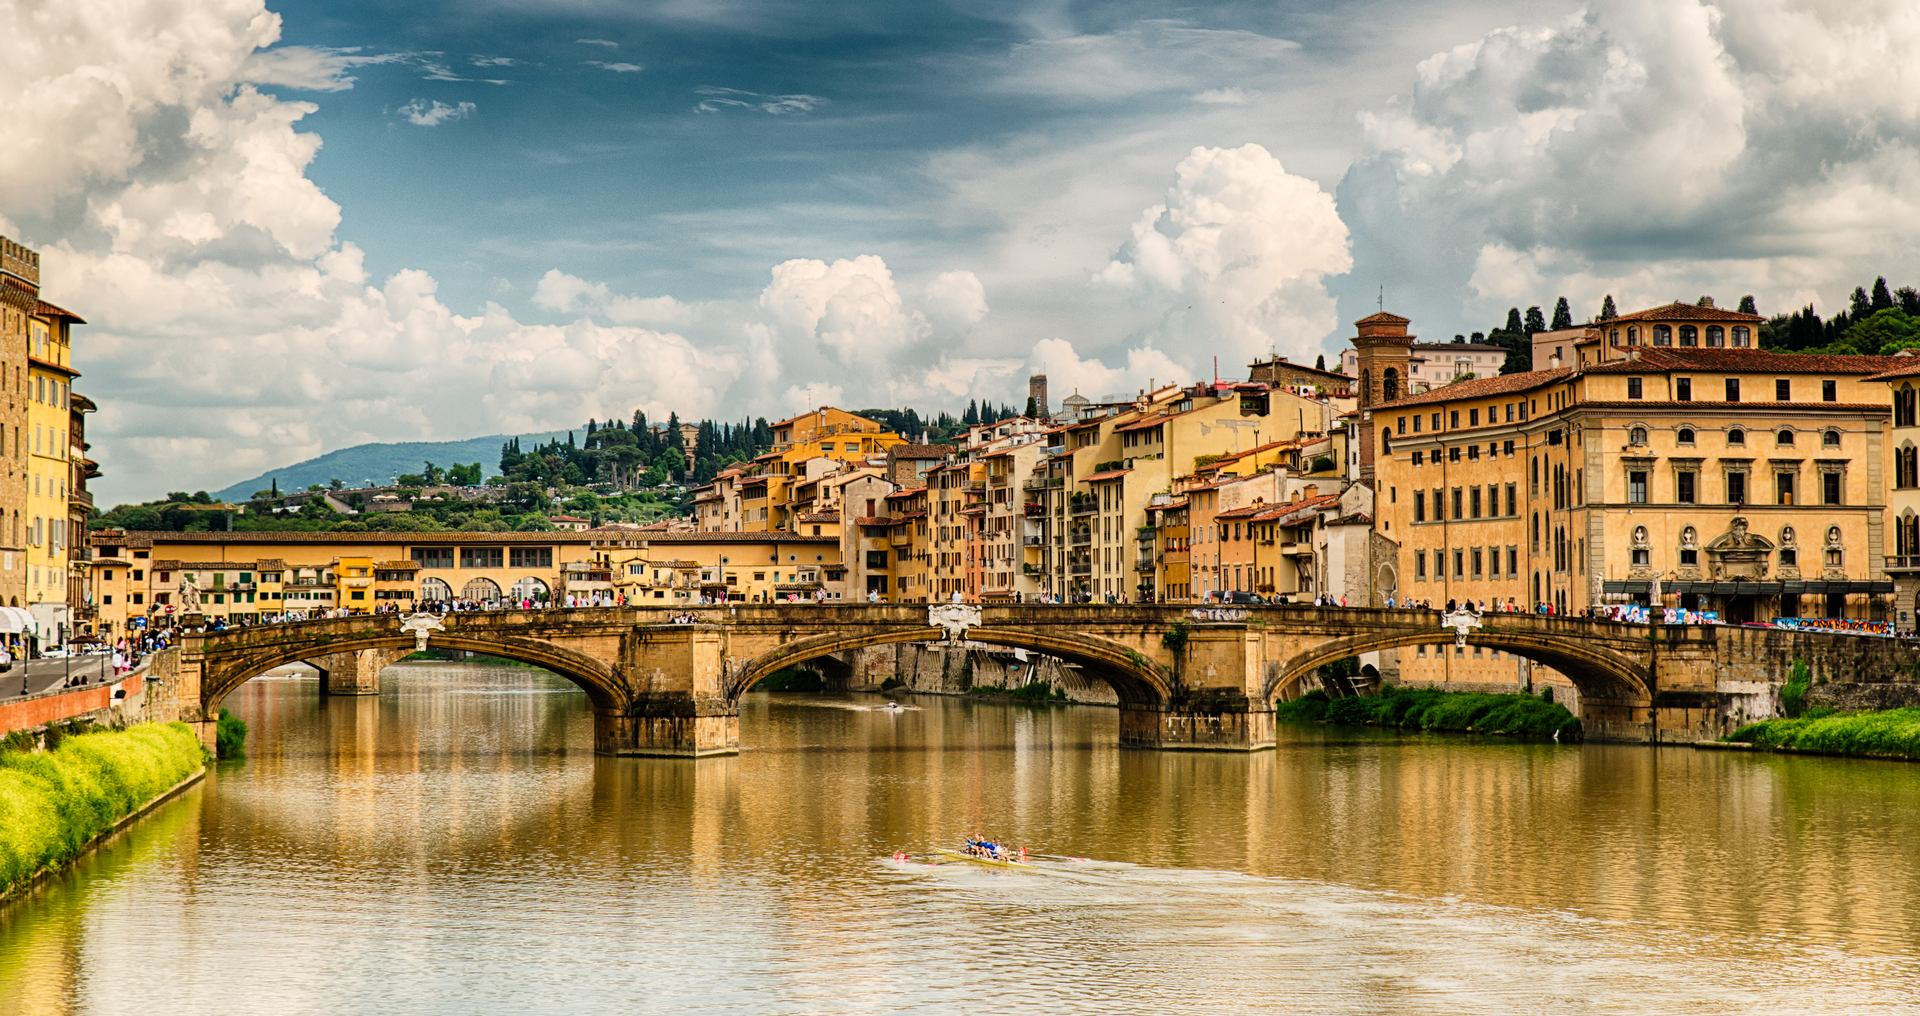 Santa Trinita Bridge in Florence